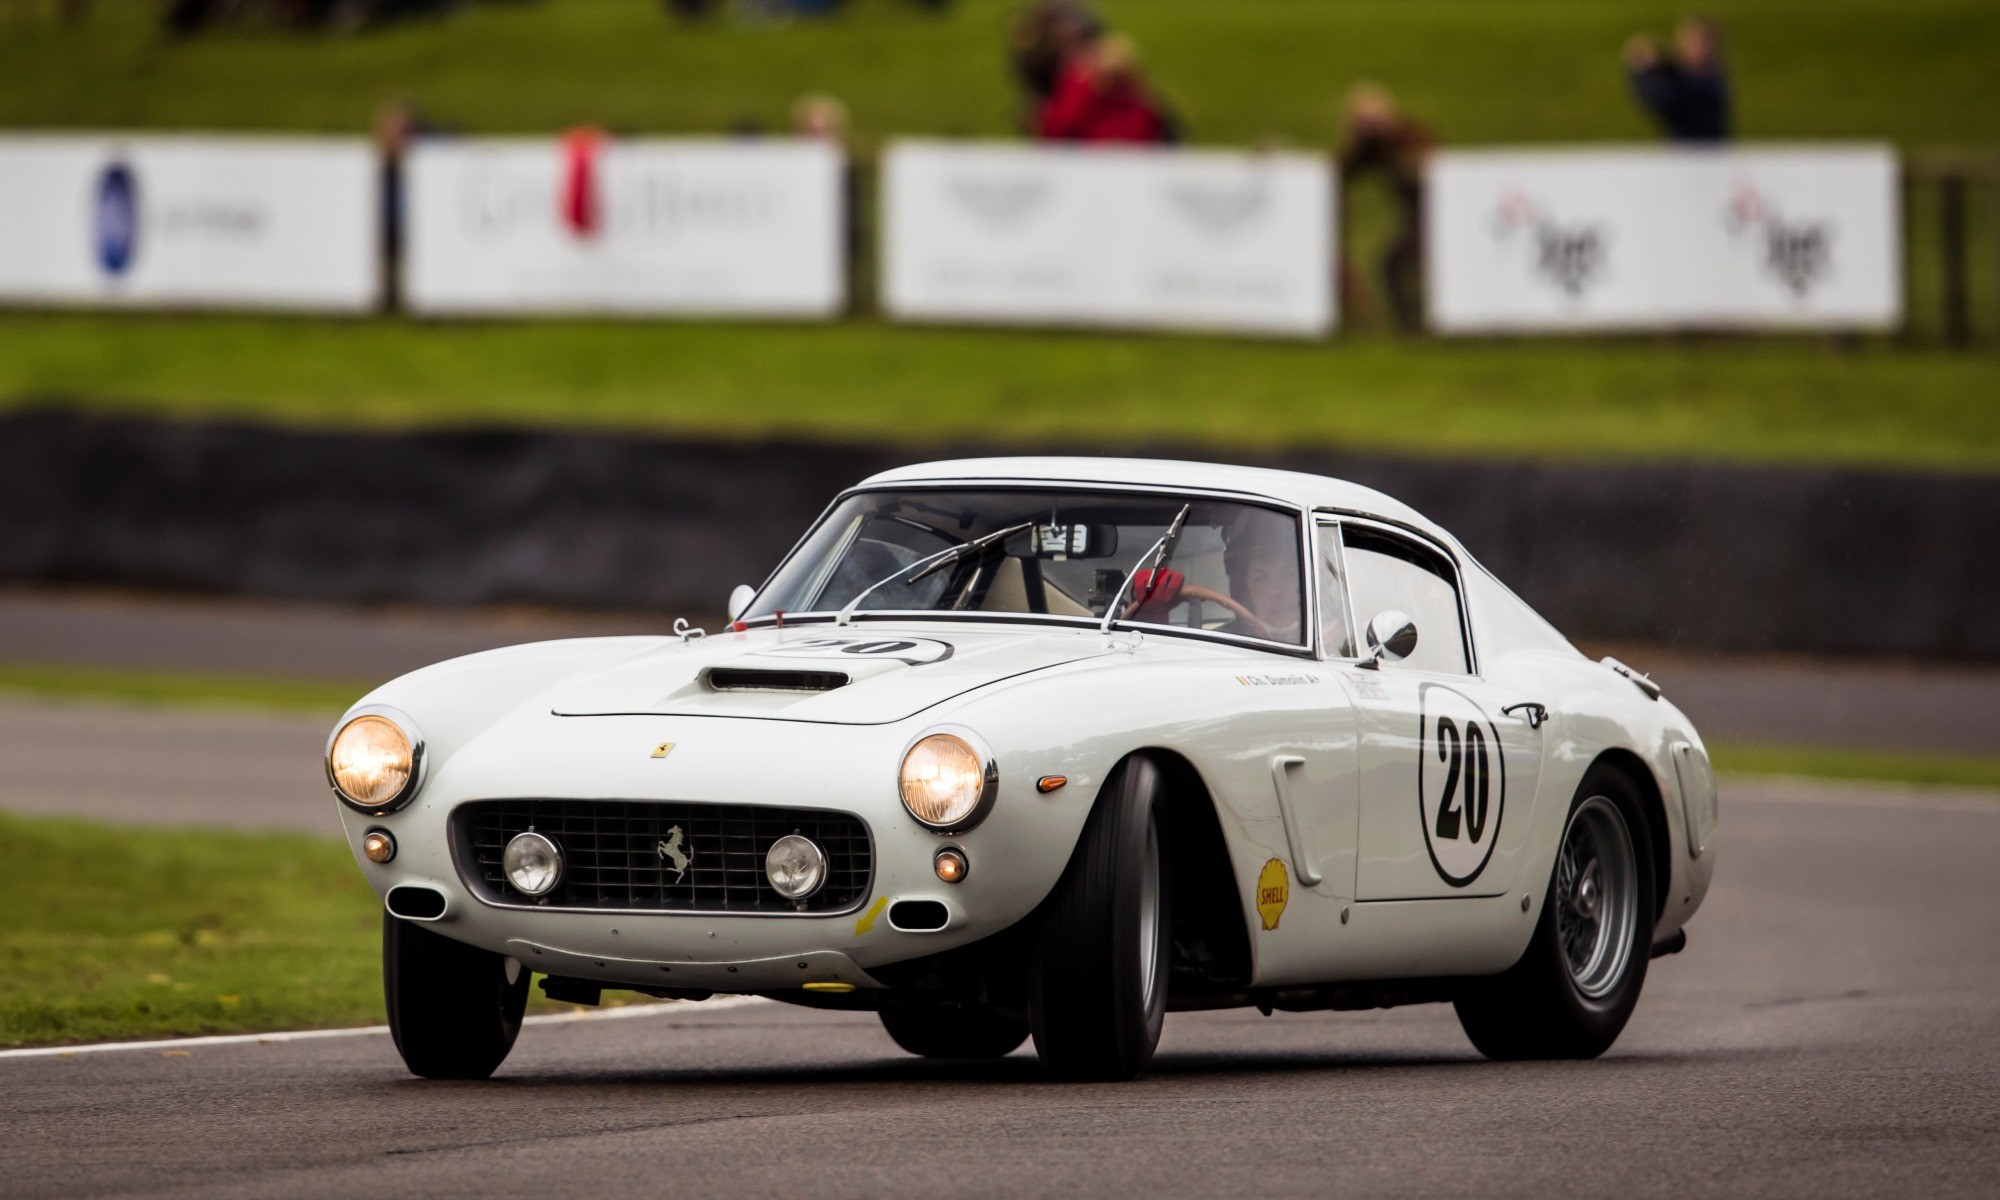 A Ferrari 250 GT SWB being driven on the absolute limit